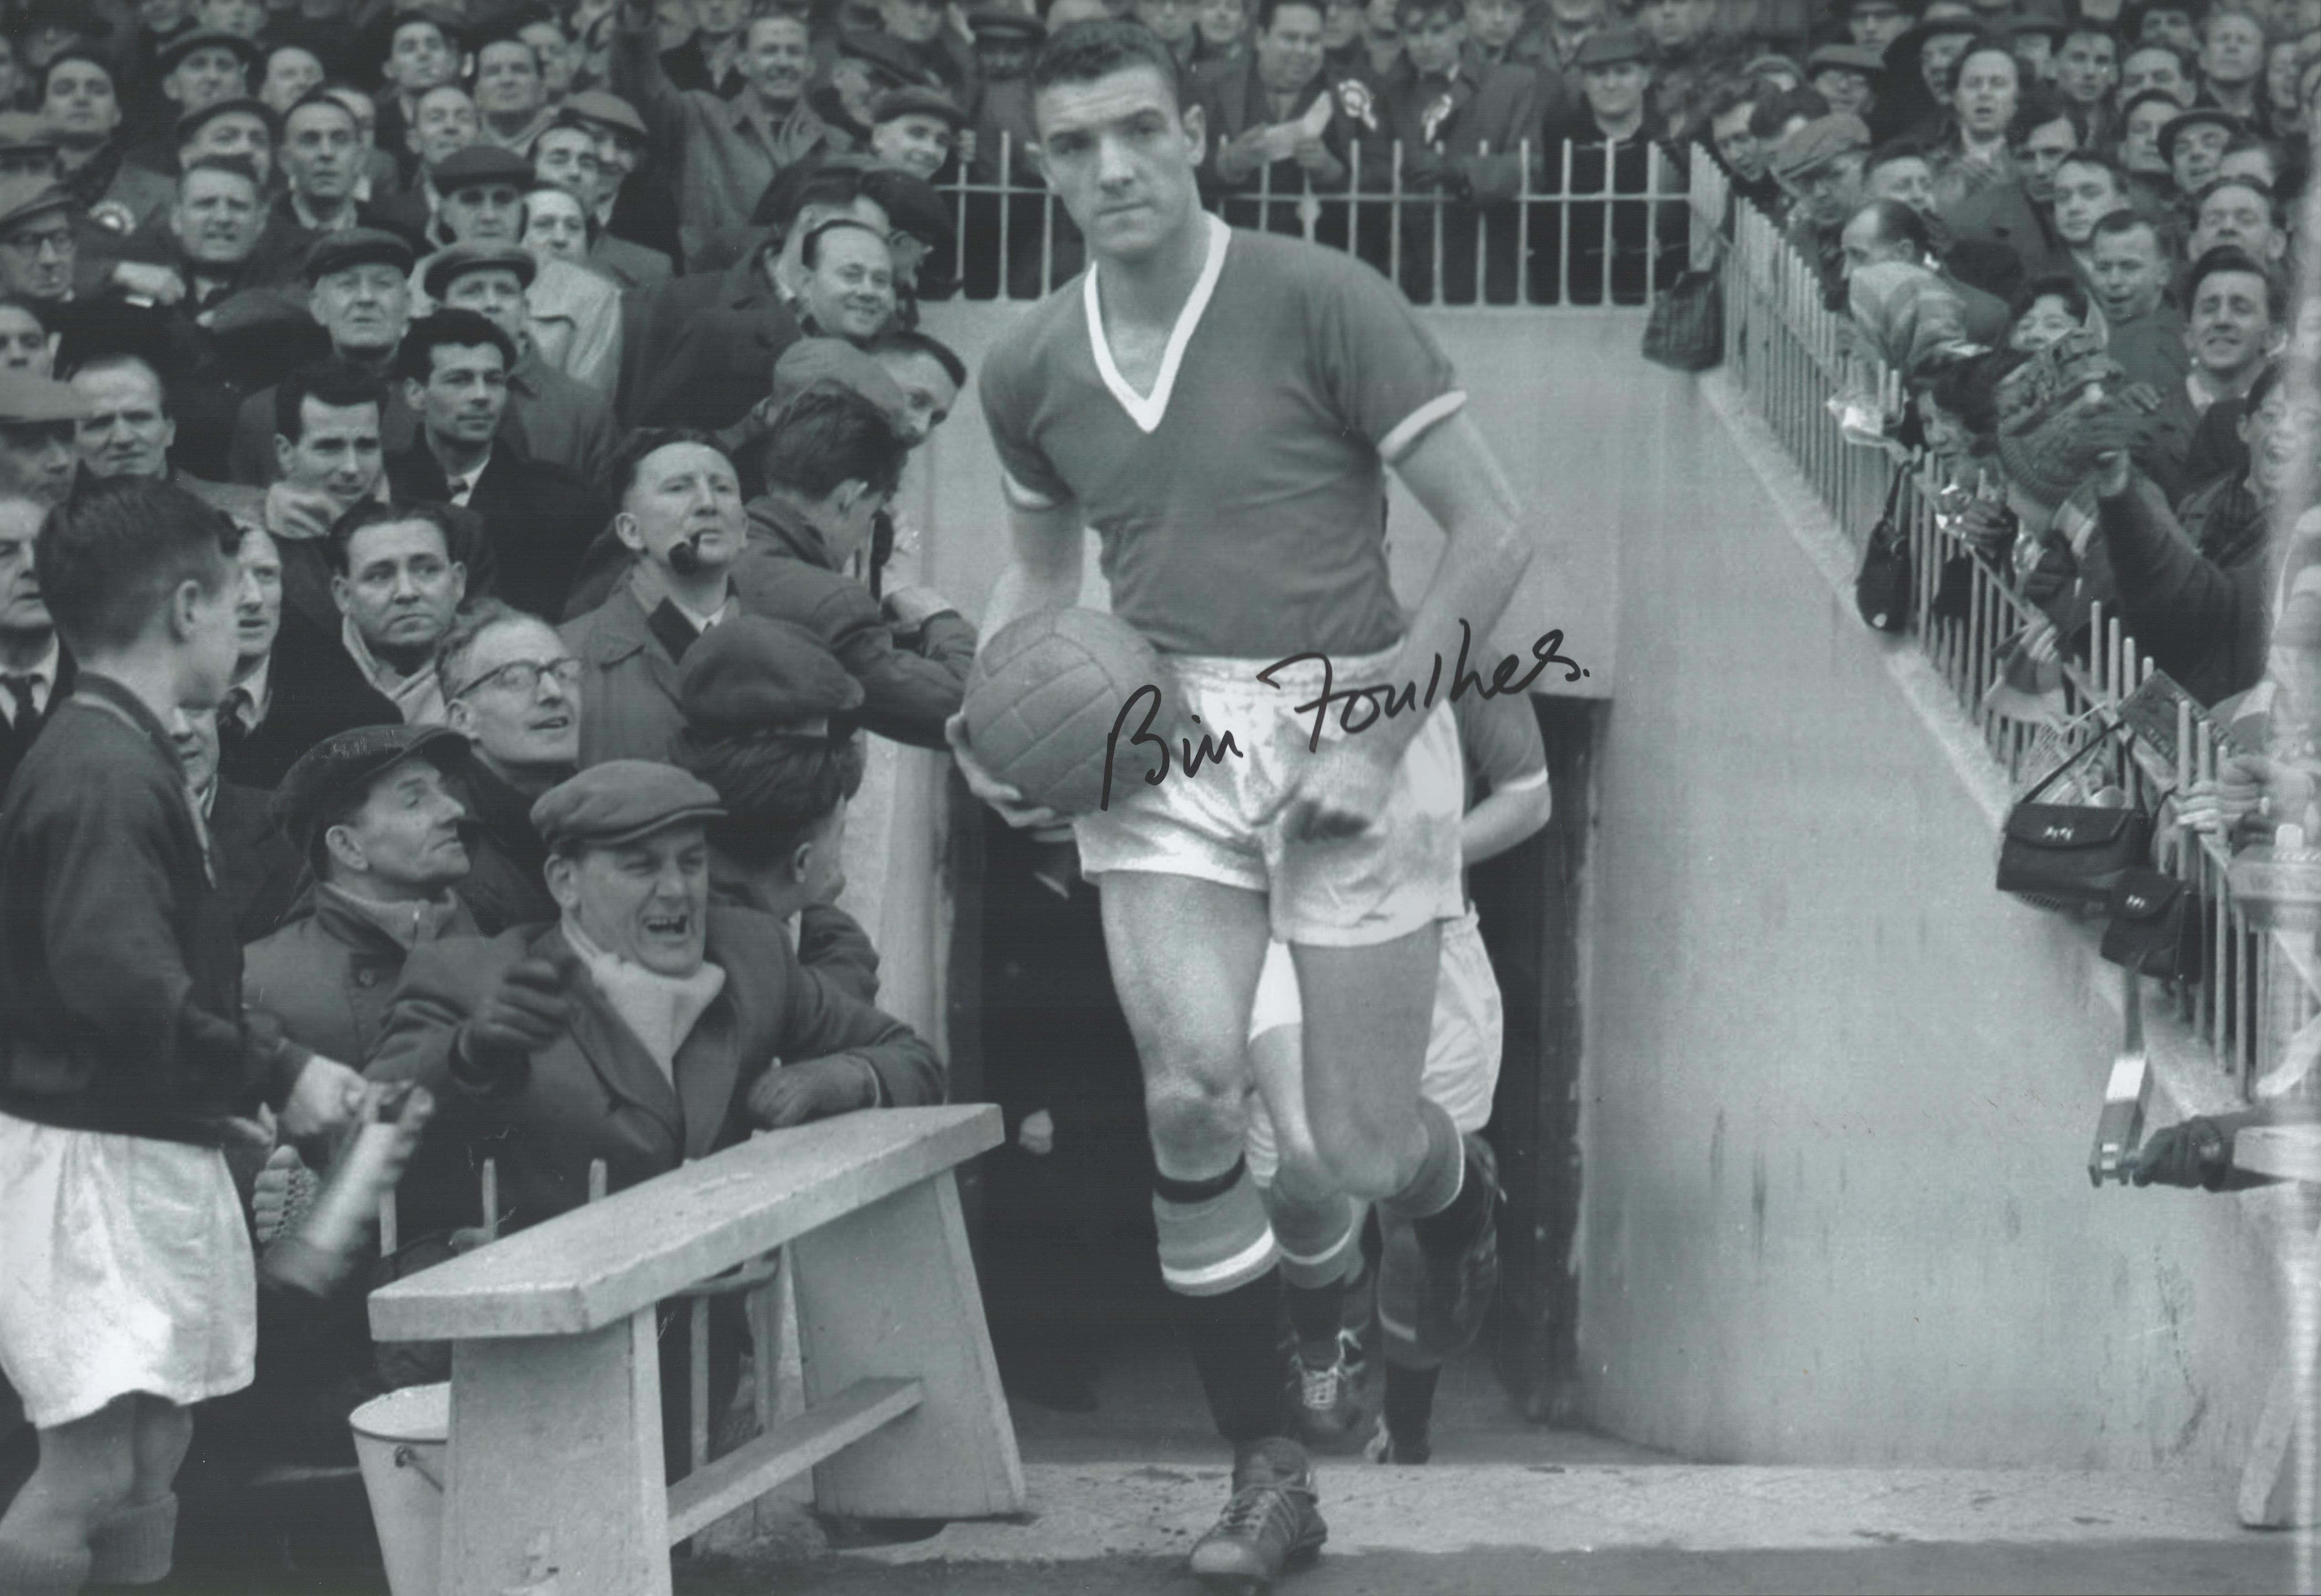 Football. Bill Foulkes Signed 18x12 black and white photo. Photo shows Foulkes running from the